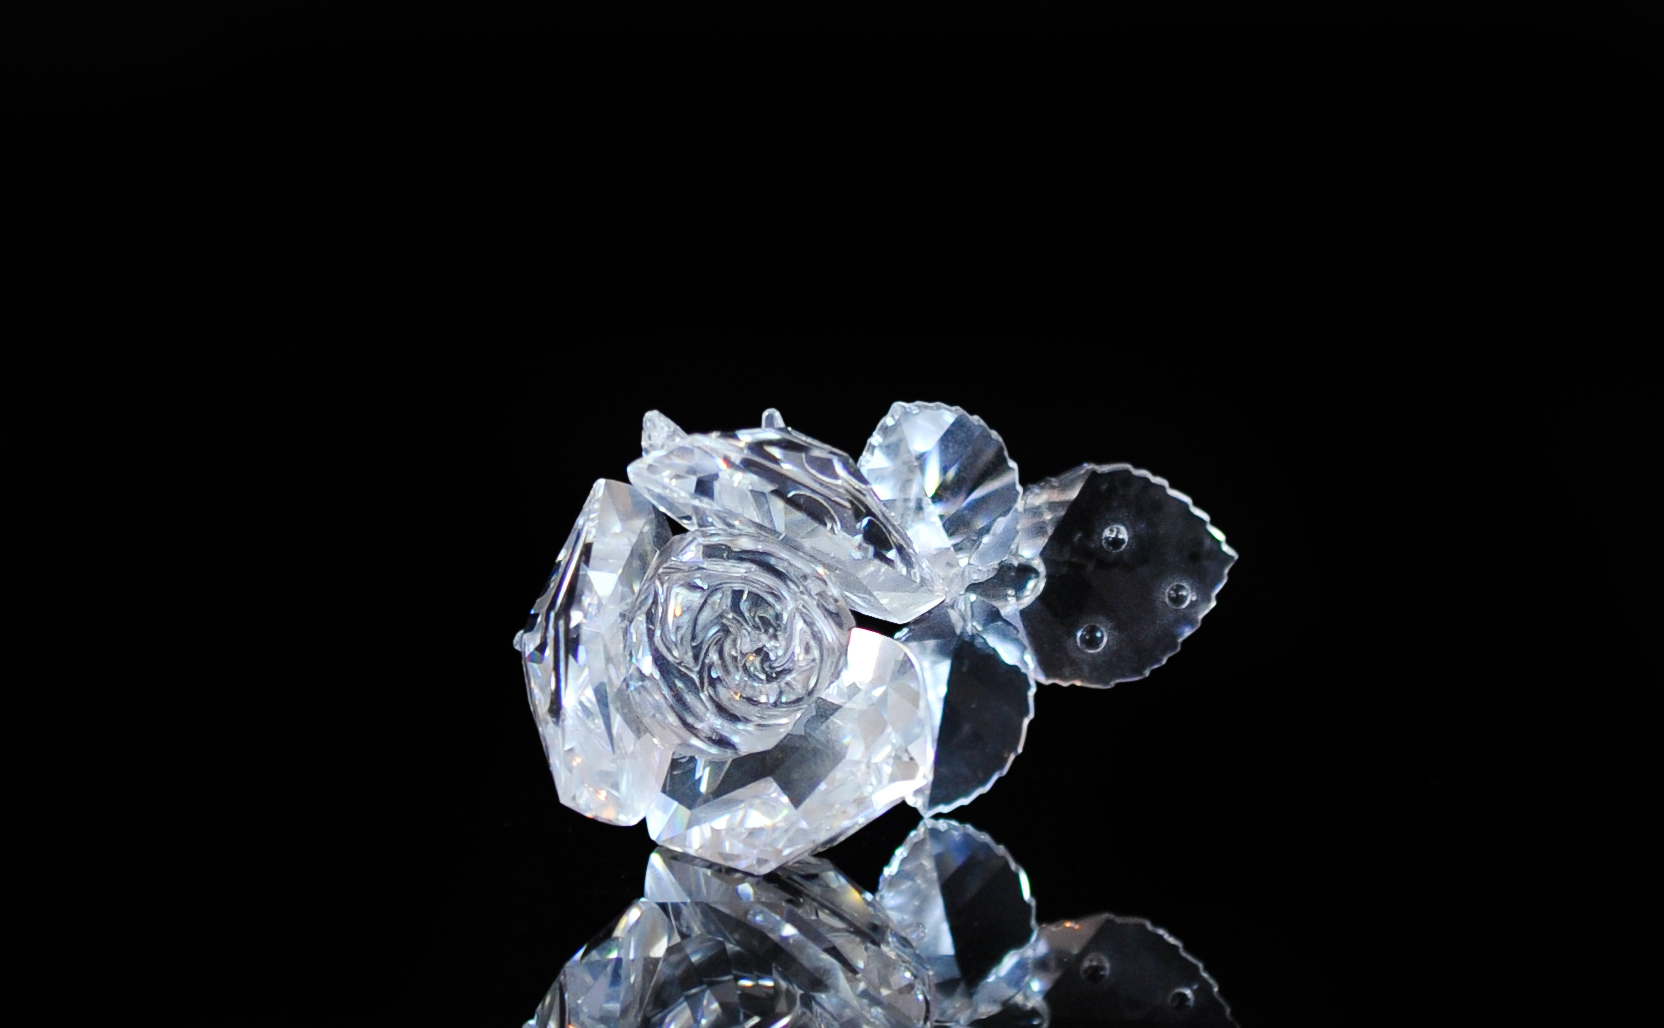 Glass Rose Wallpapers High Quality  0e1484651c